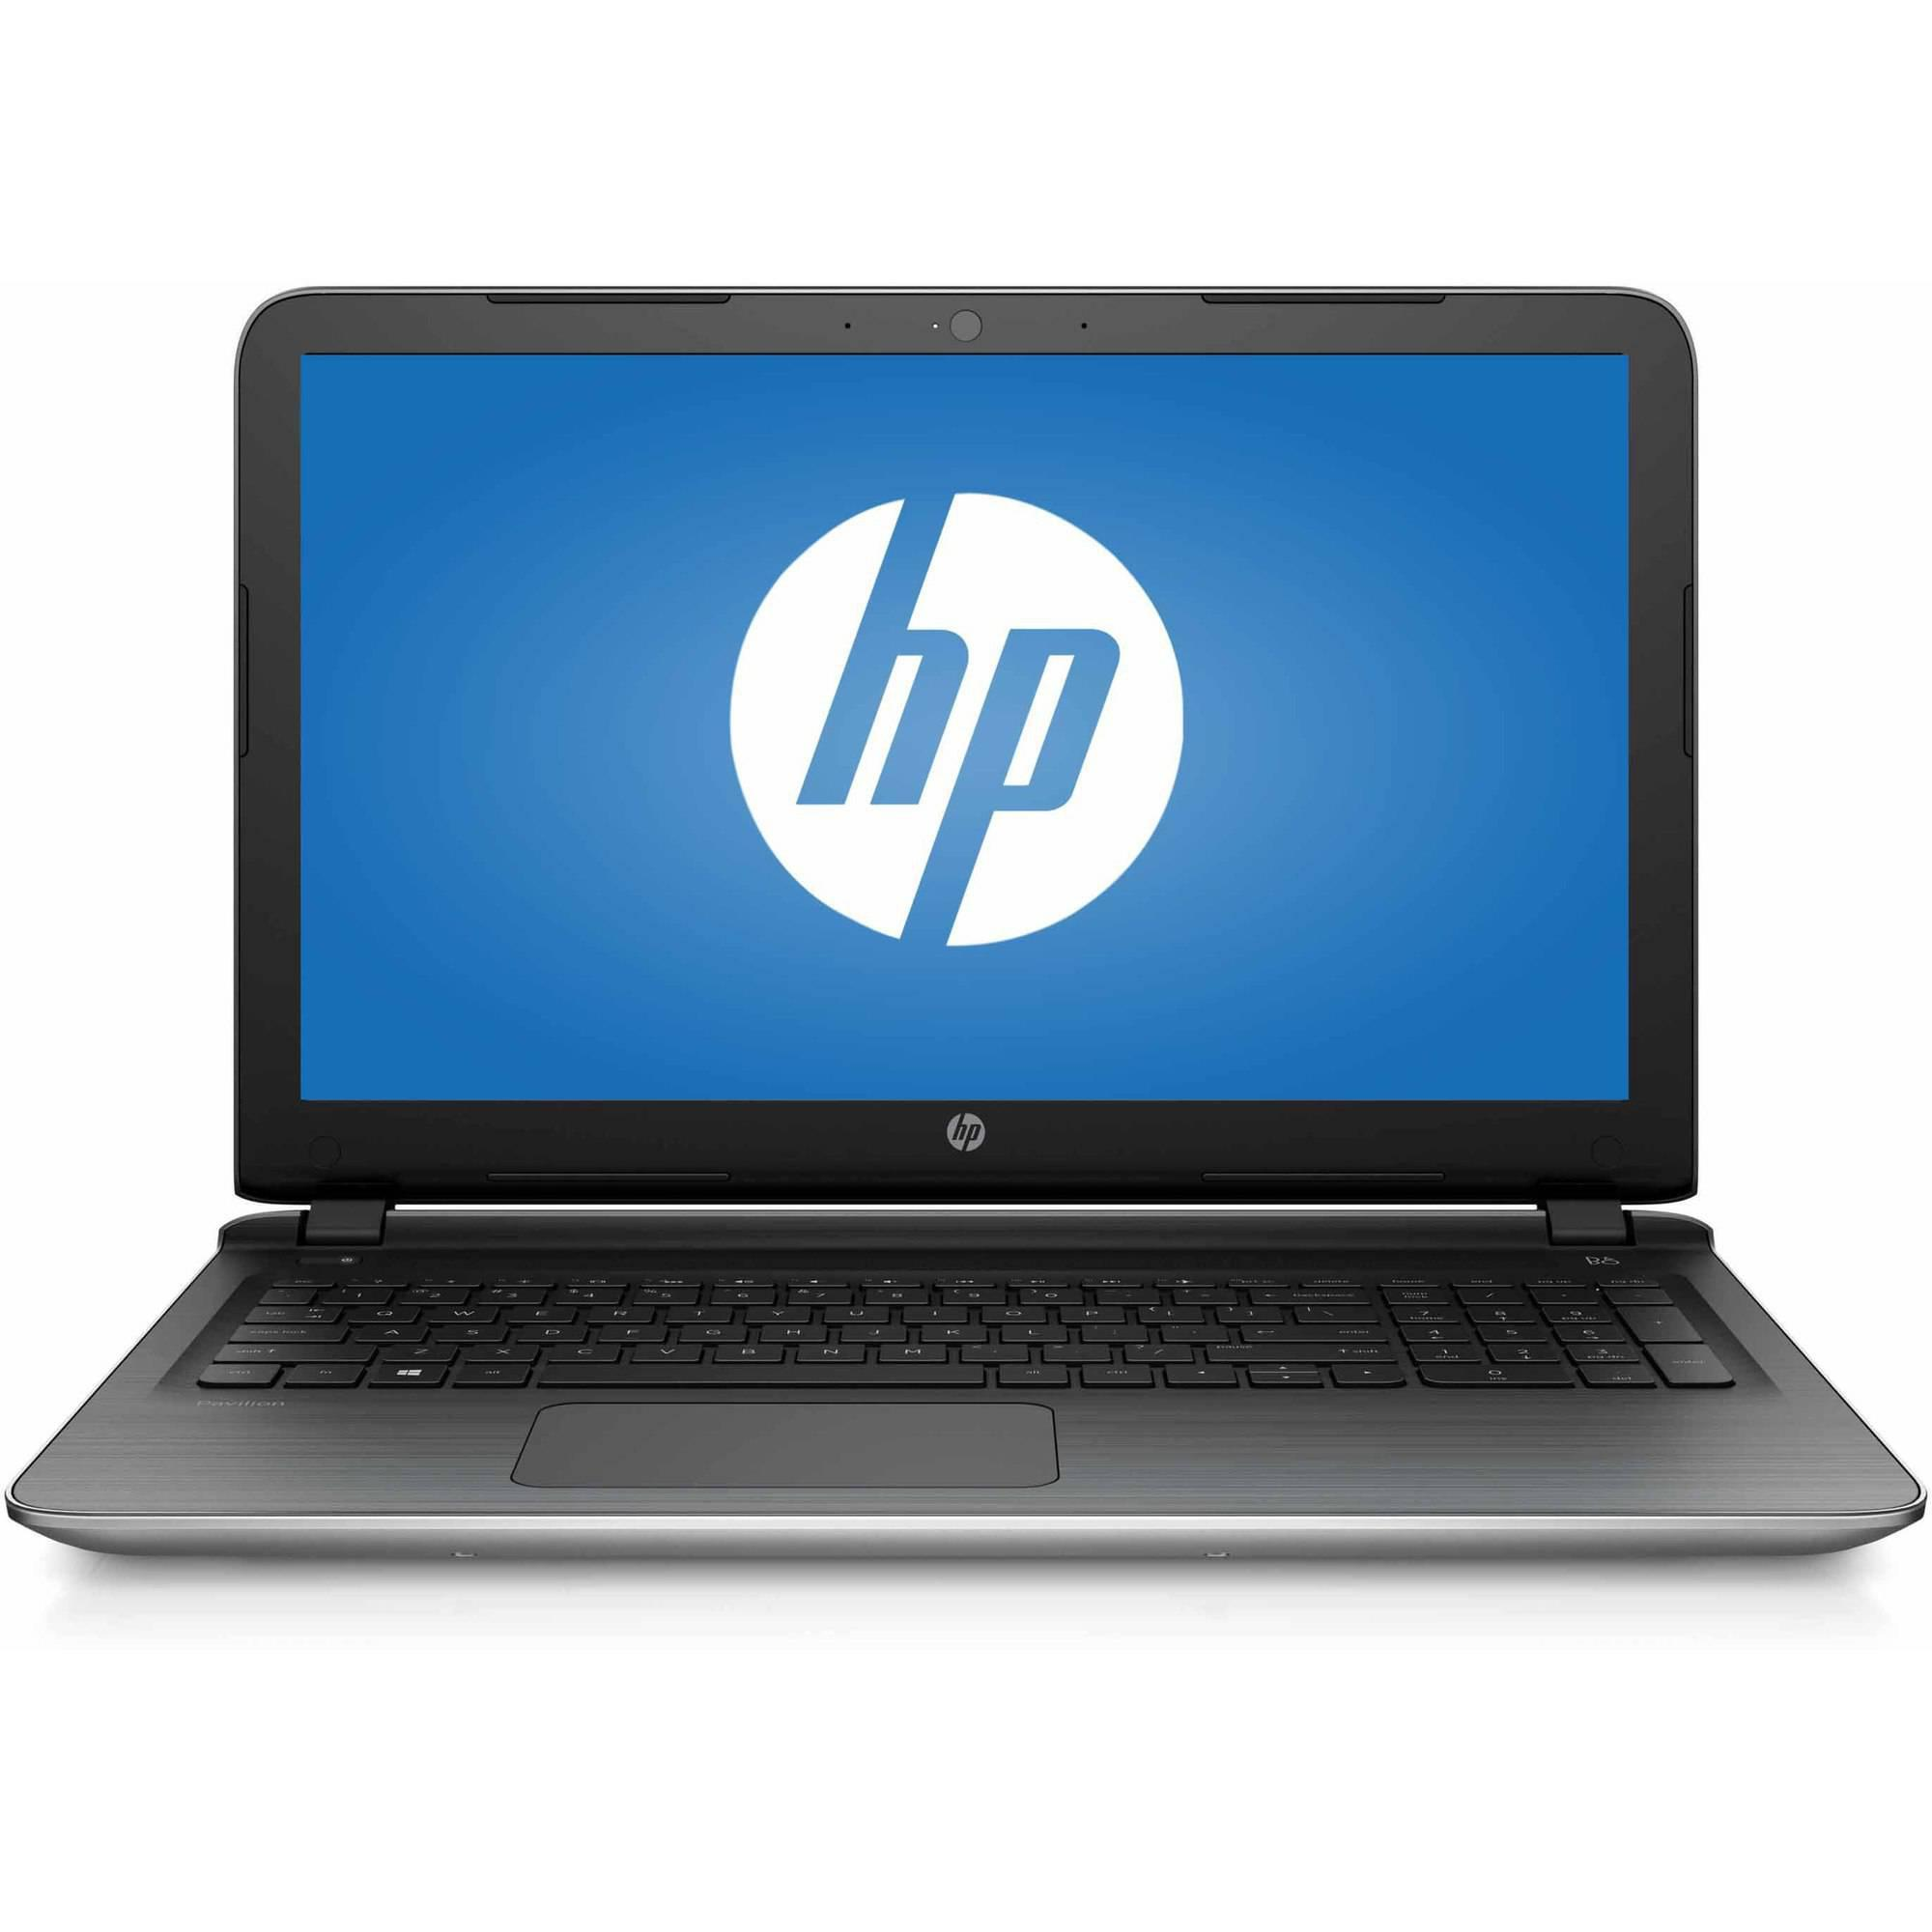 Hp Pavilion Dv2000 Drivers Windows 7